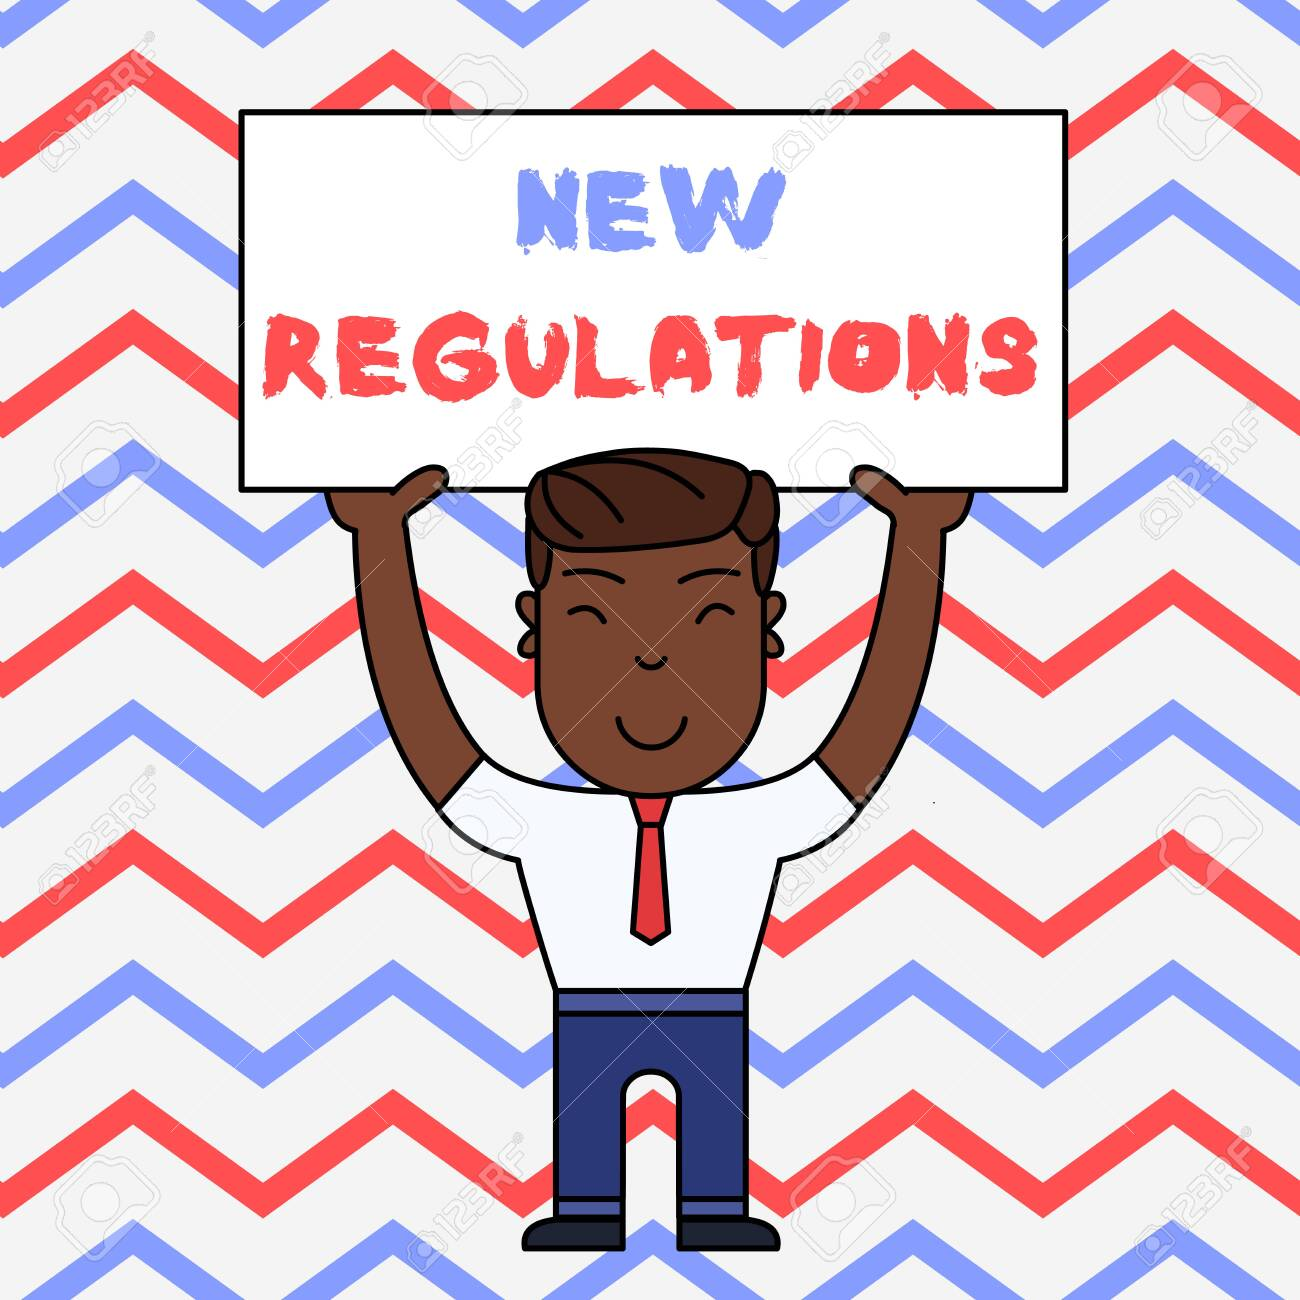 Text sign showing New Regulations. Business photo text Regulation controlling the activity usually used by rules. Smiling Man Standing Holding Big Empty Placard Overhead with Both Hands - 124929313